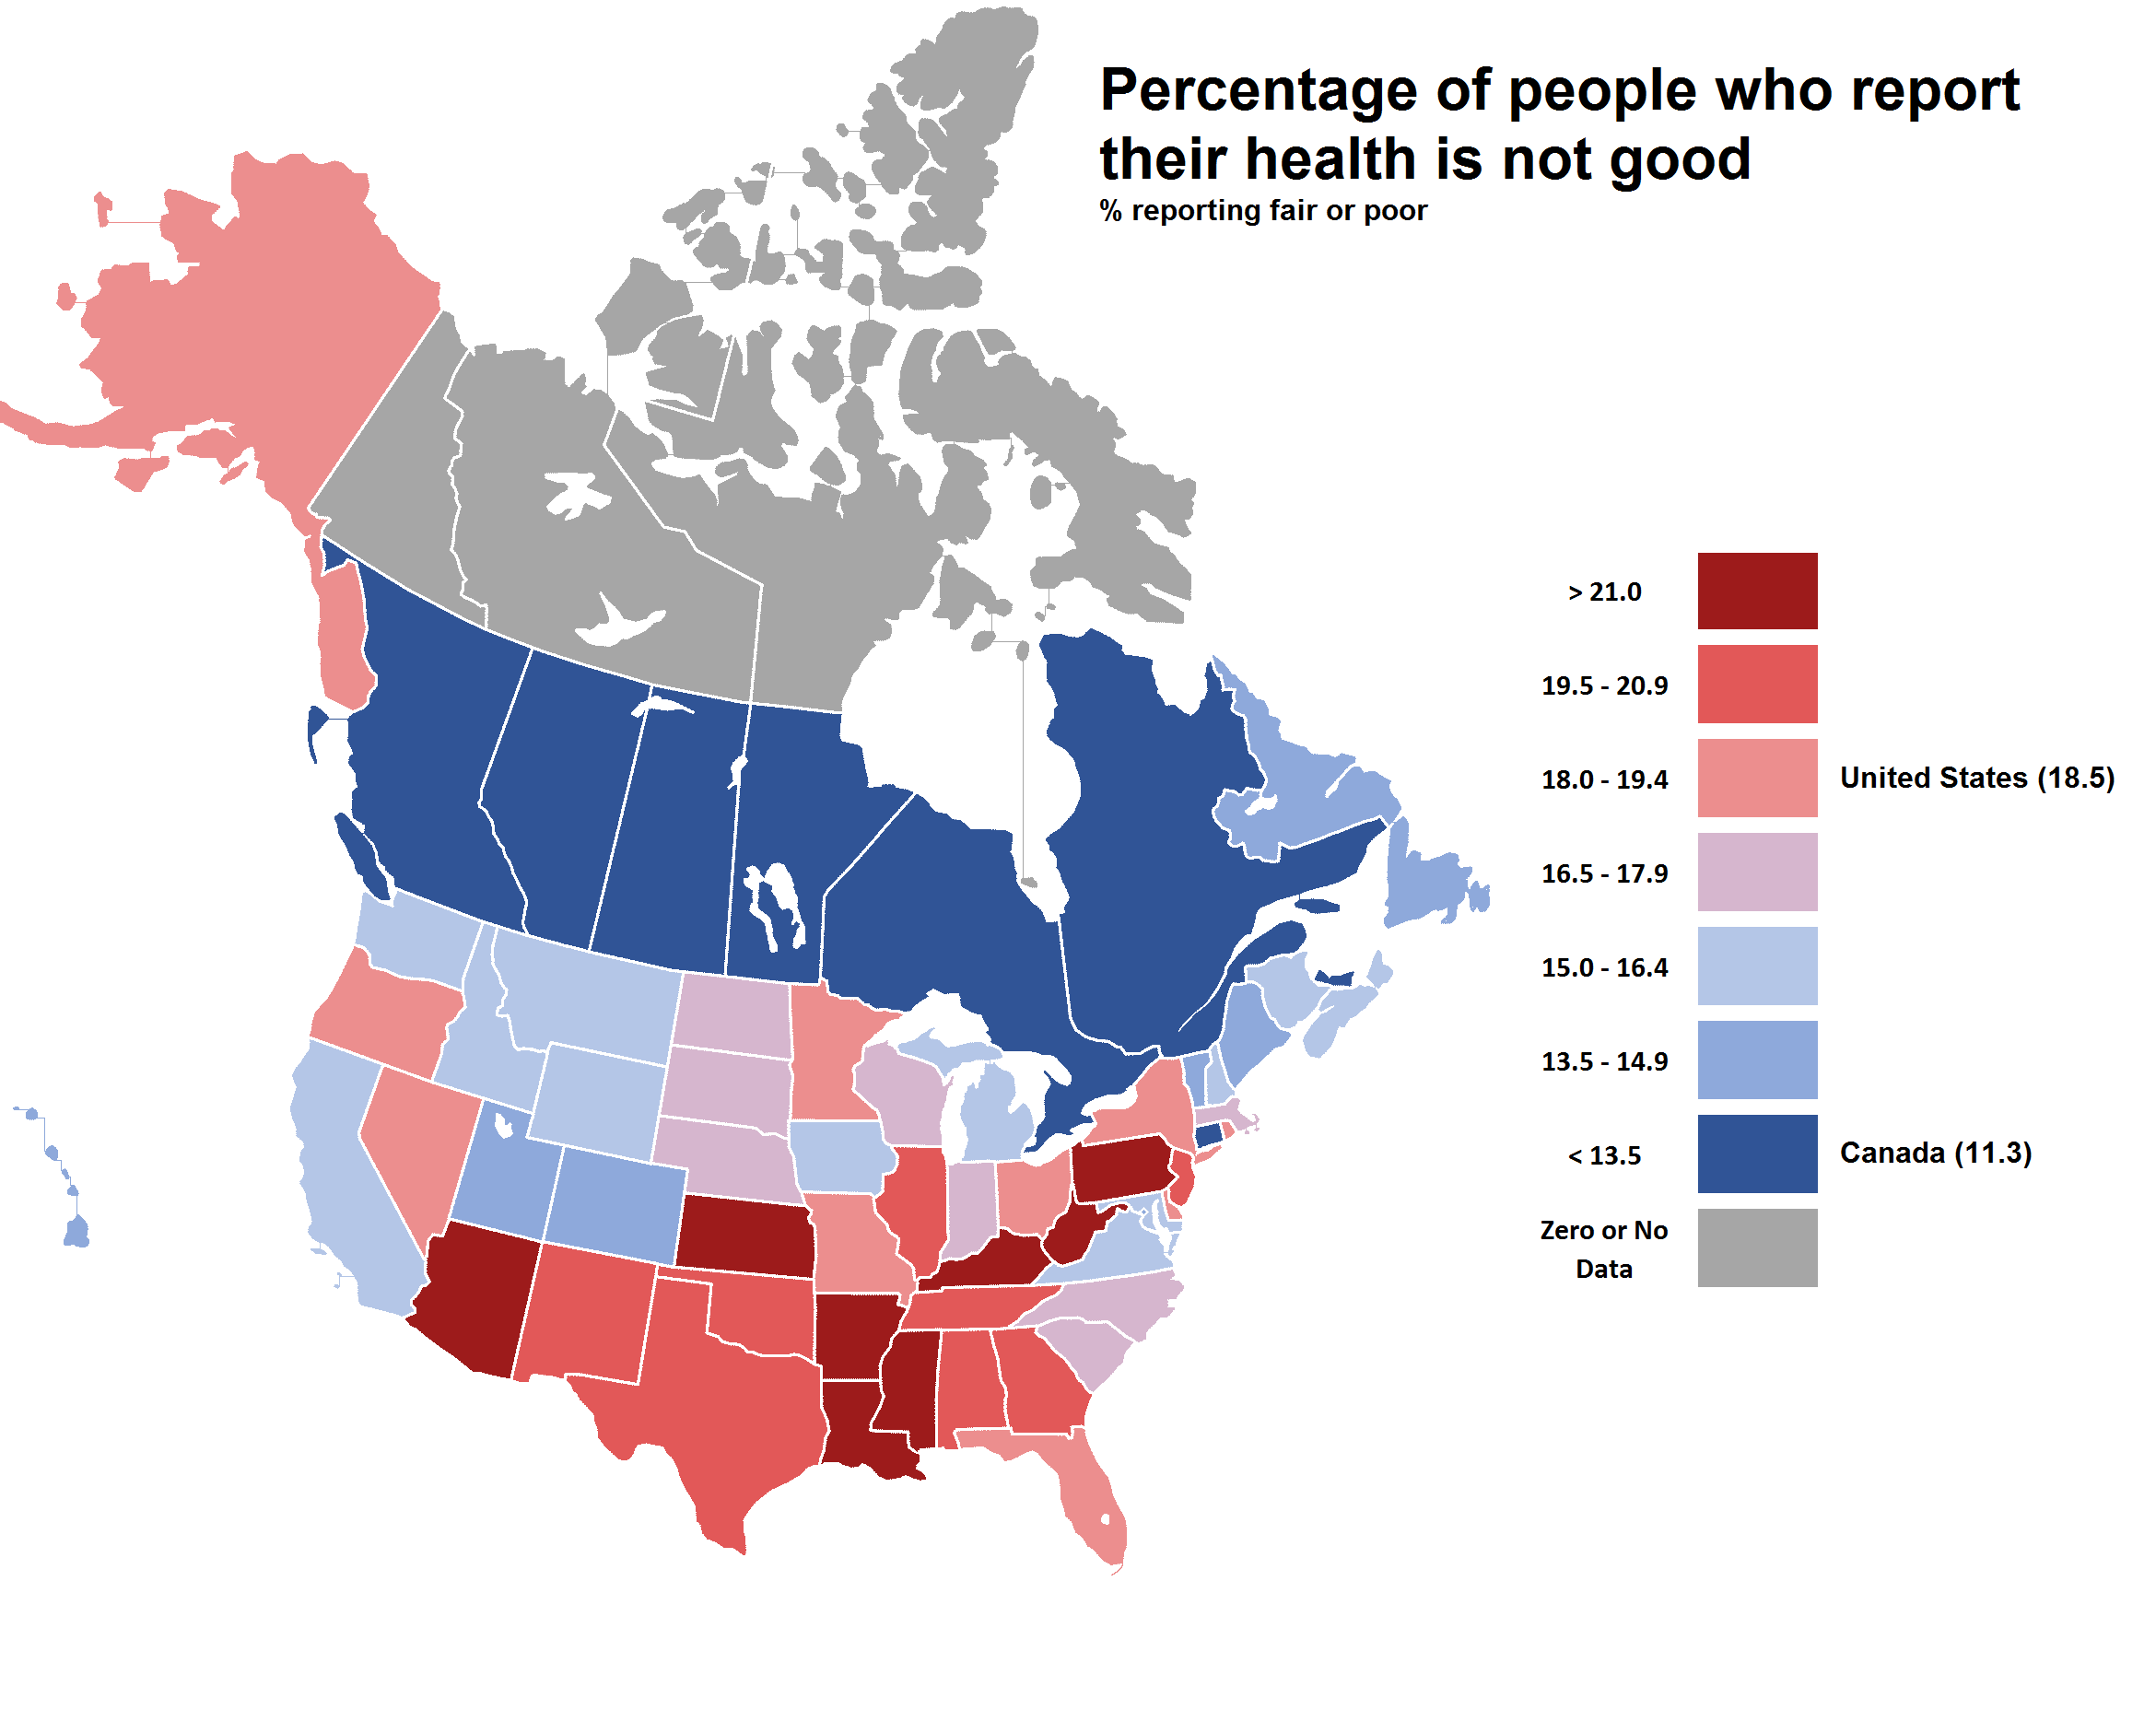 Mapping U.S. State and Canadian Province data. Part 31